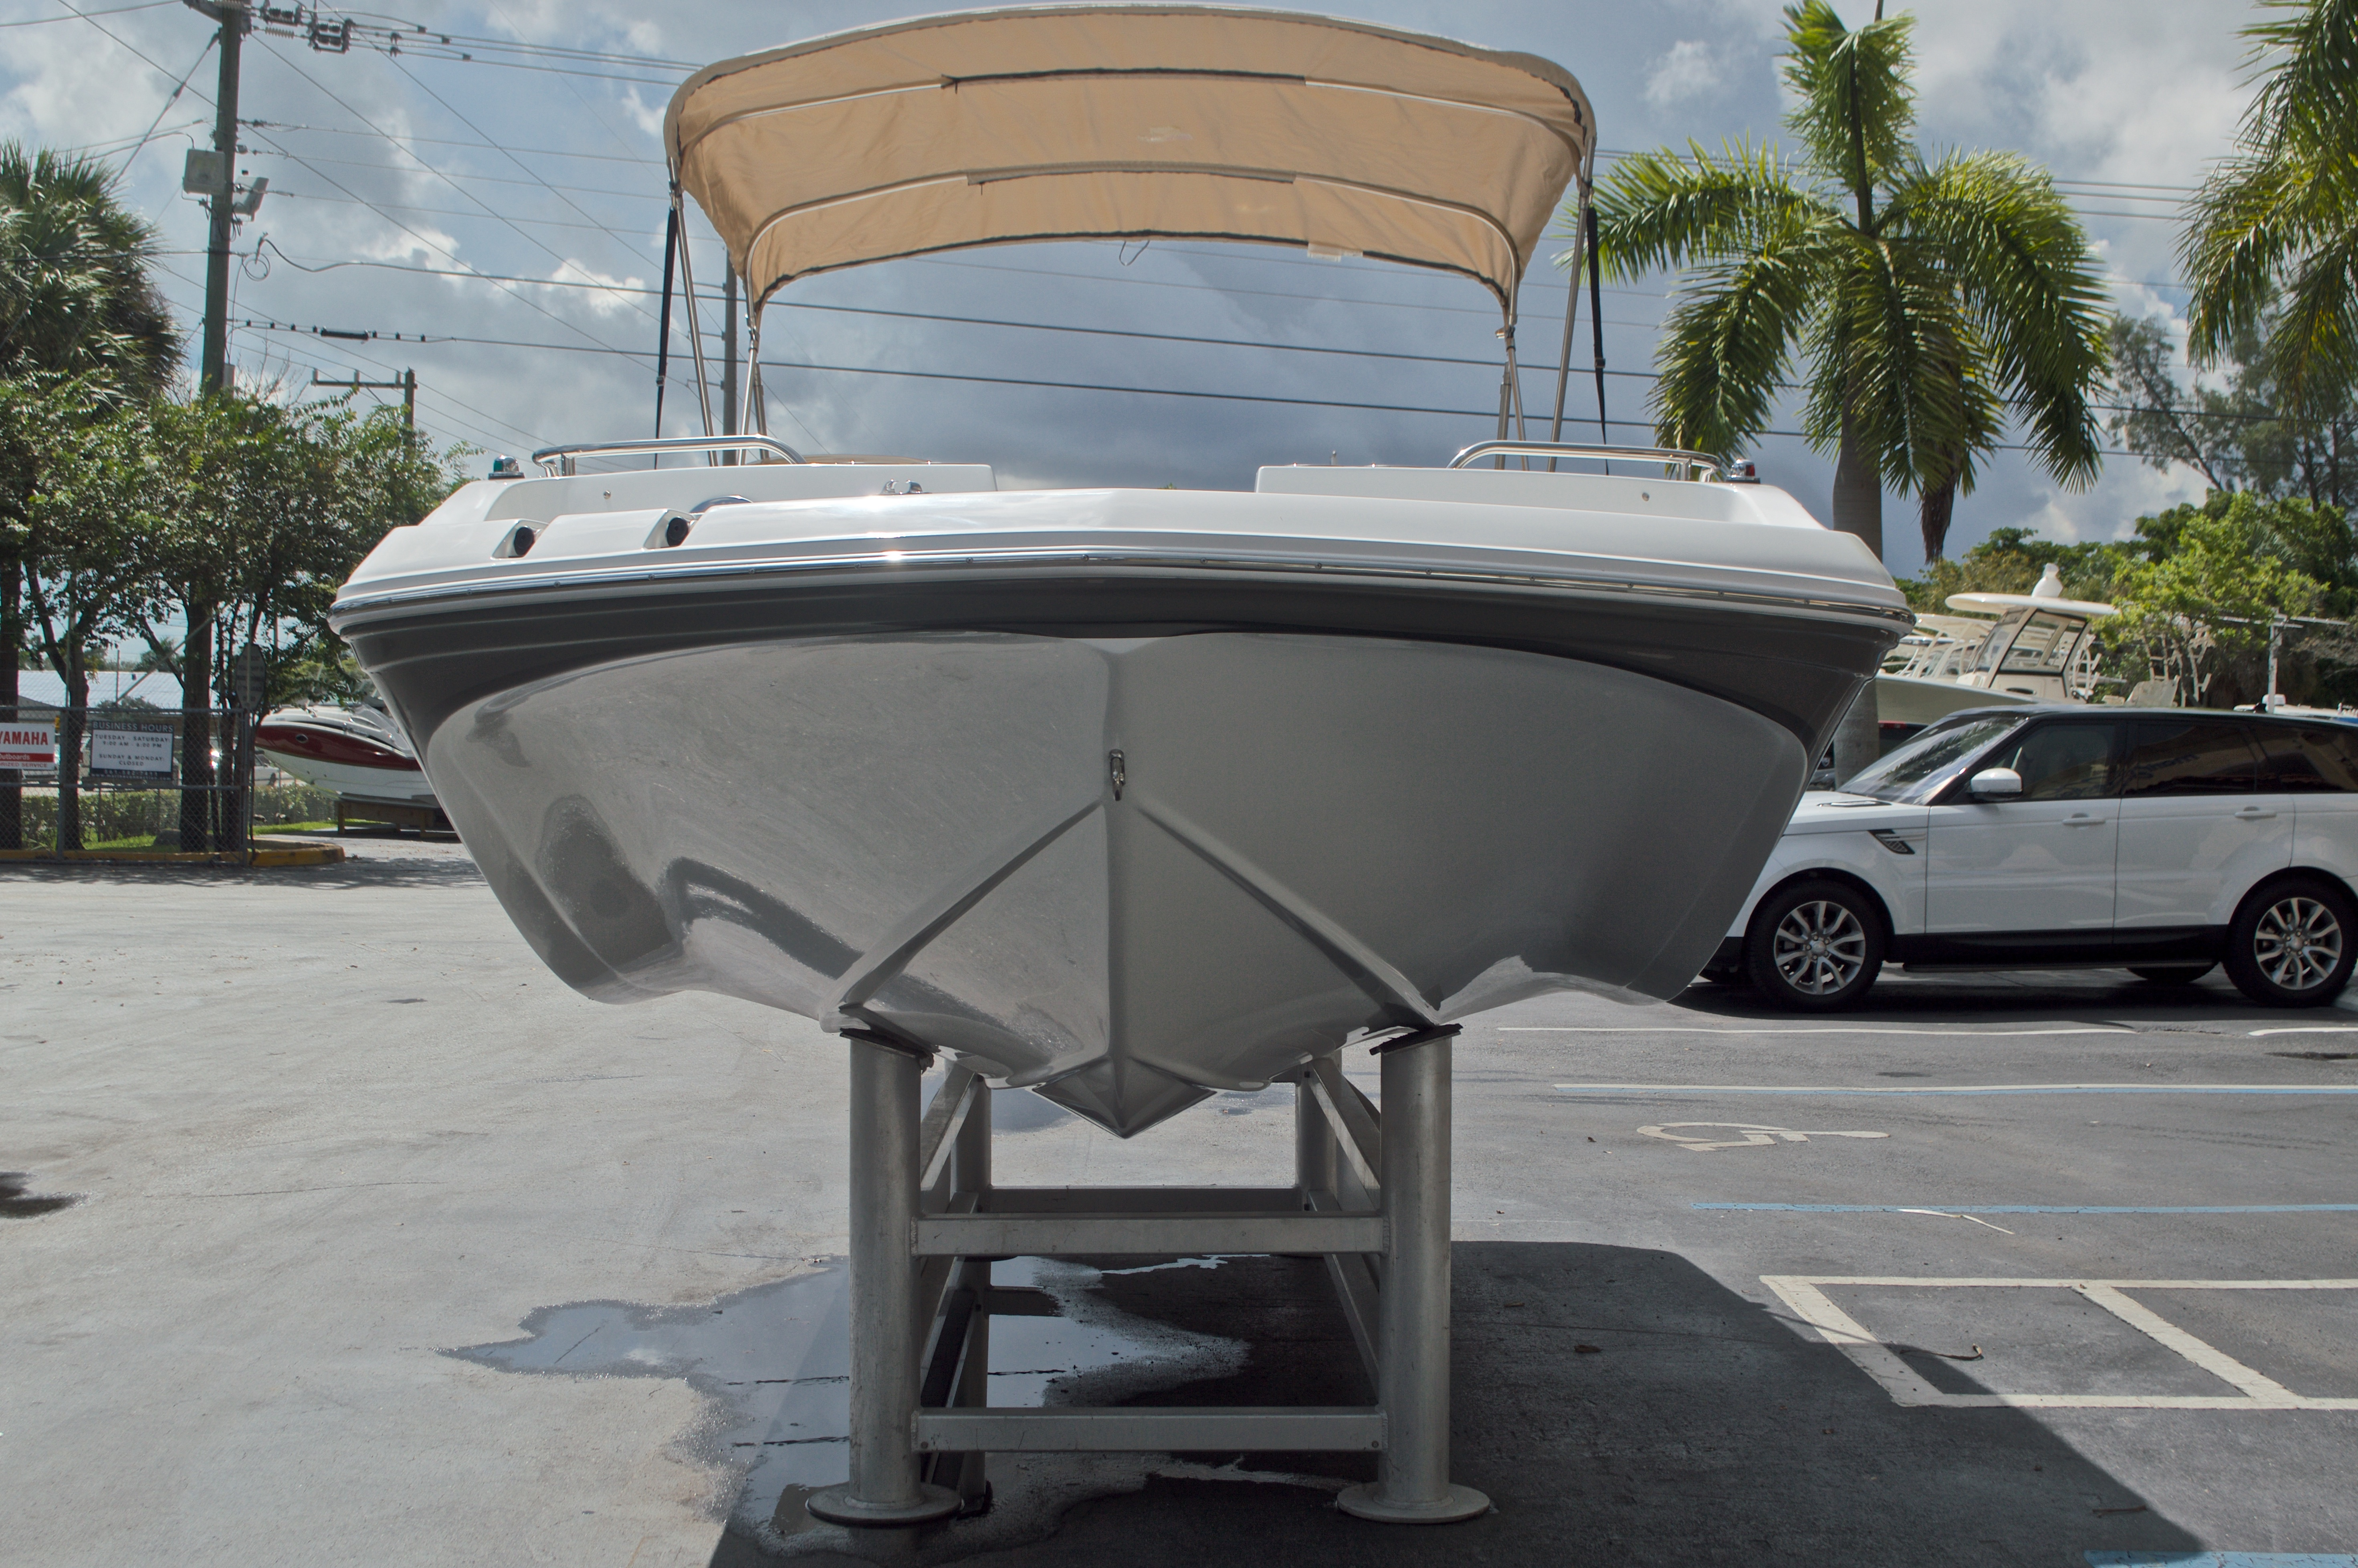 Thumbnail 2 for New 2017 Hurricane SunDeck Sport SS 188 OB boat for sale in West Palm Beach, FL